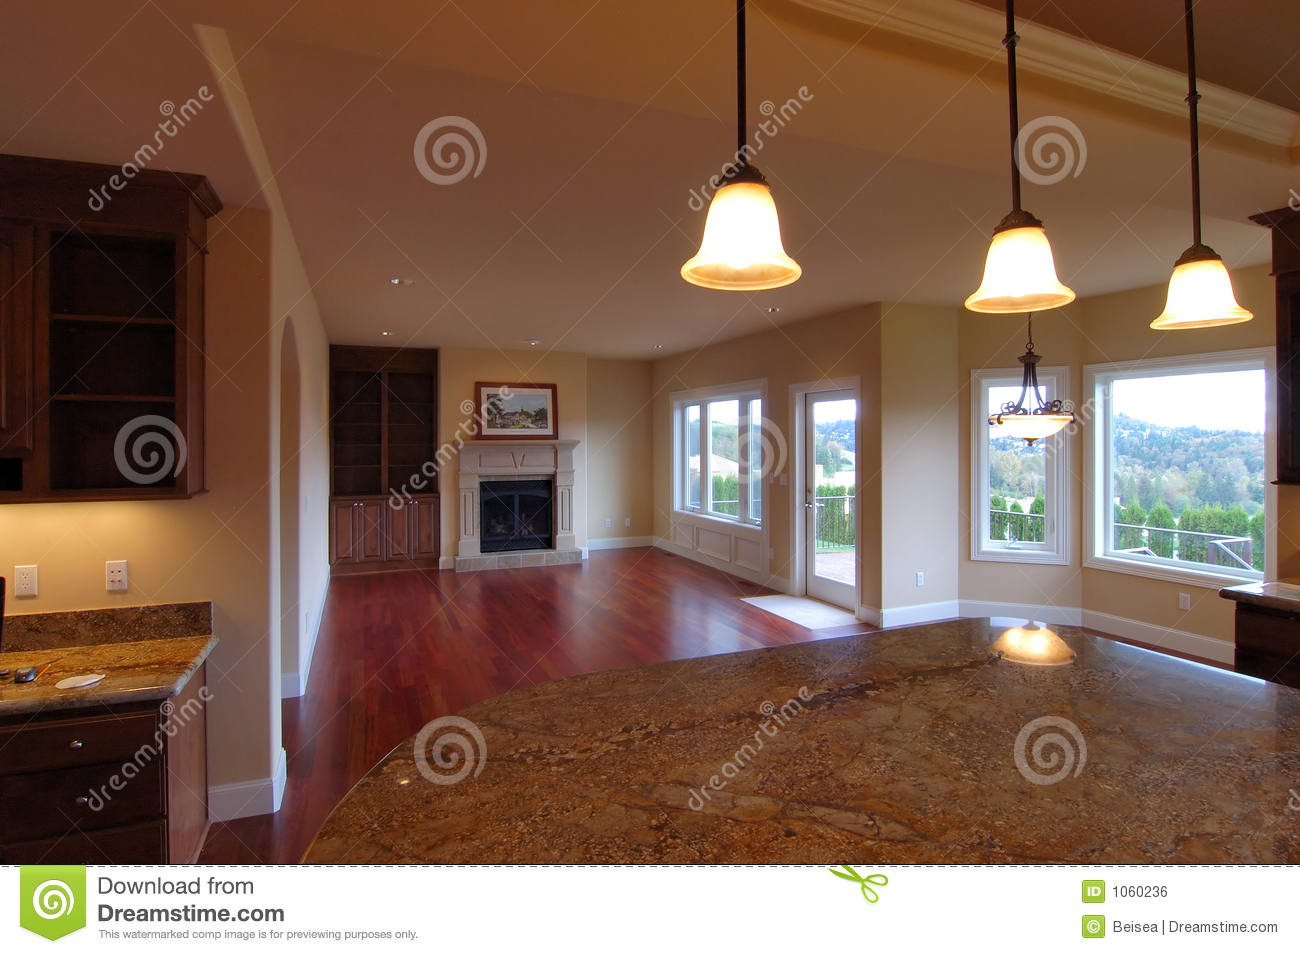 Luxury american house interior royalty free stock image Casas americanas interior